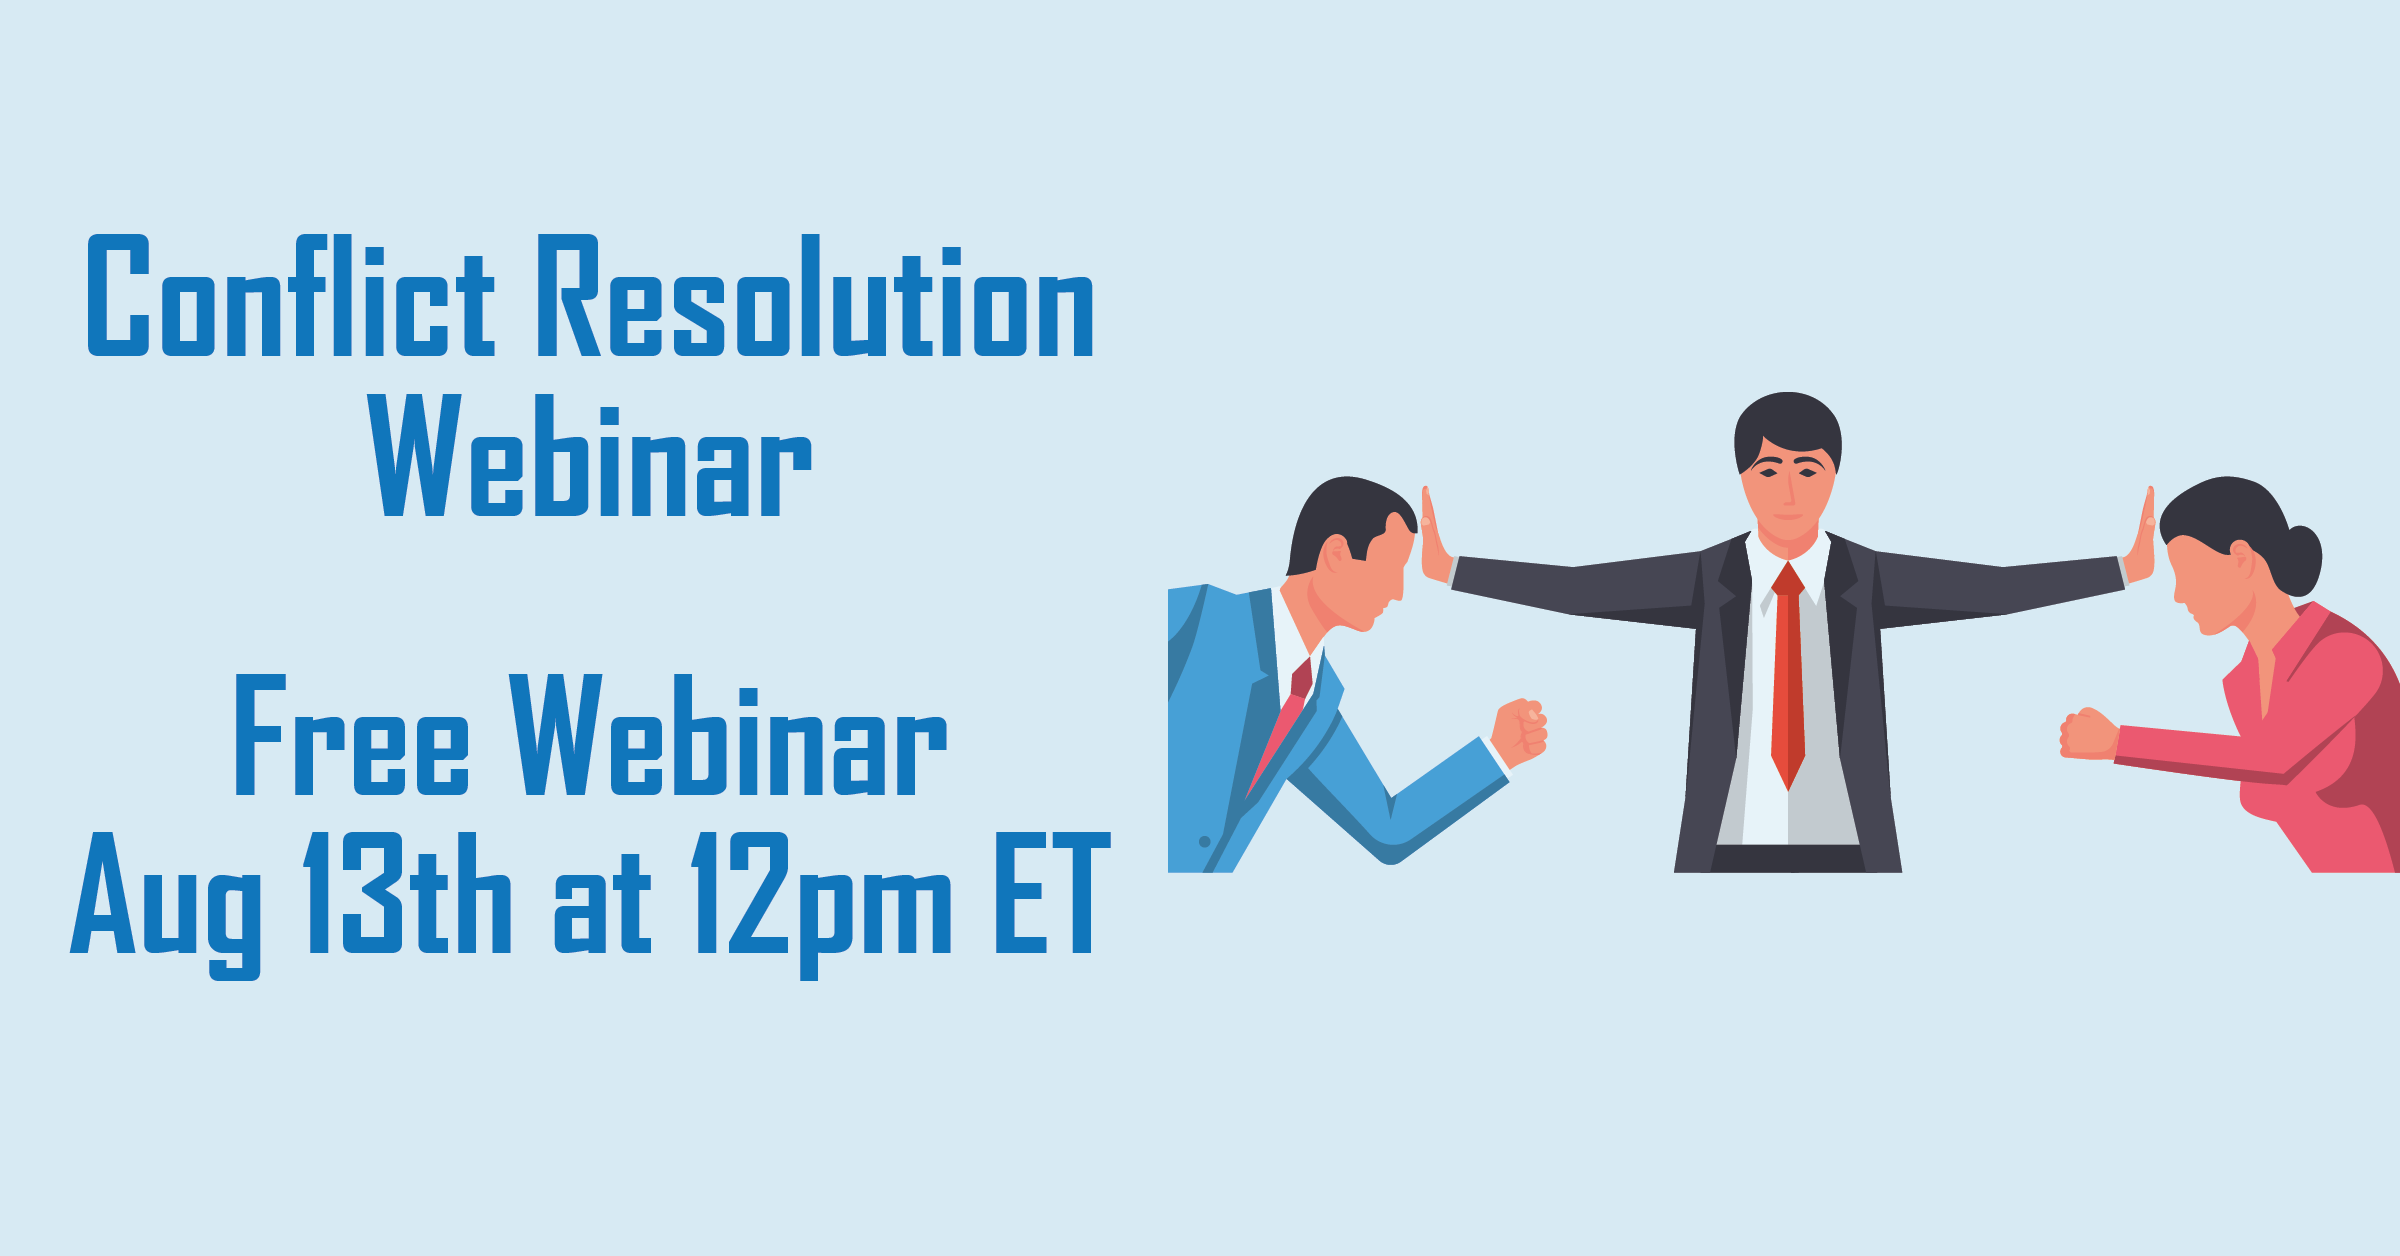 Conflict Resolution Webinar